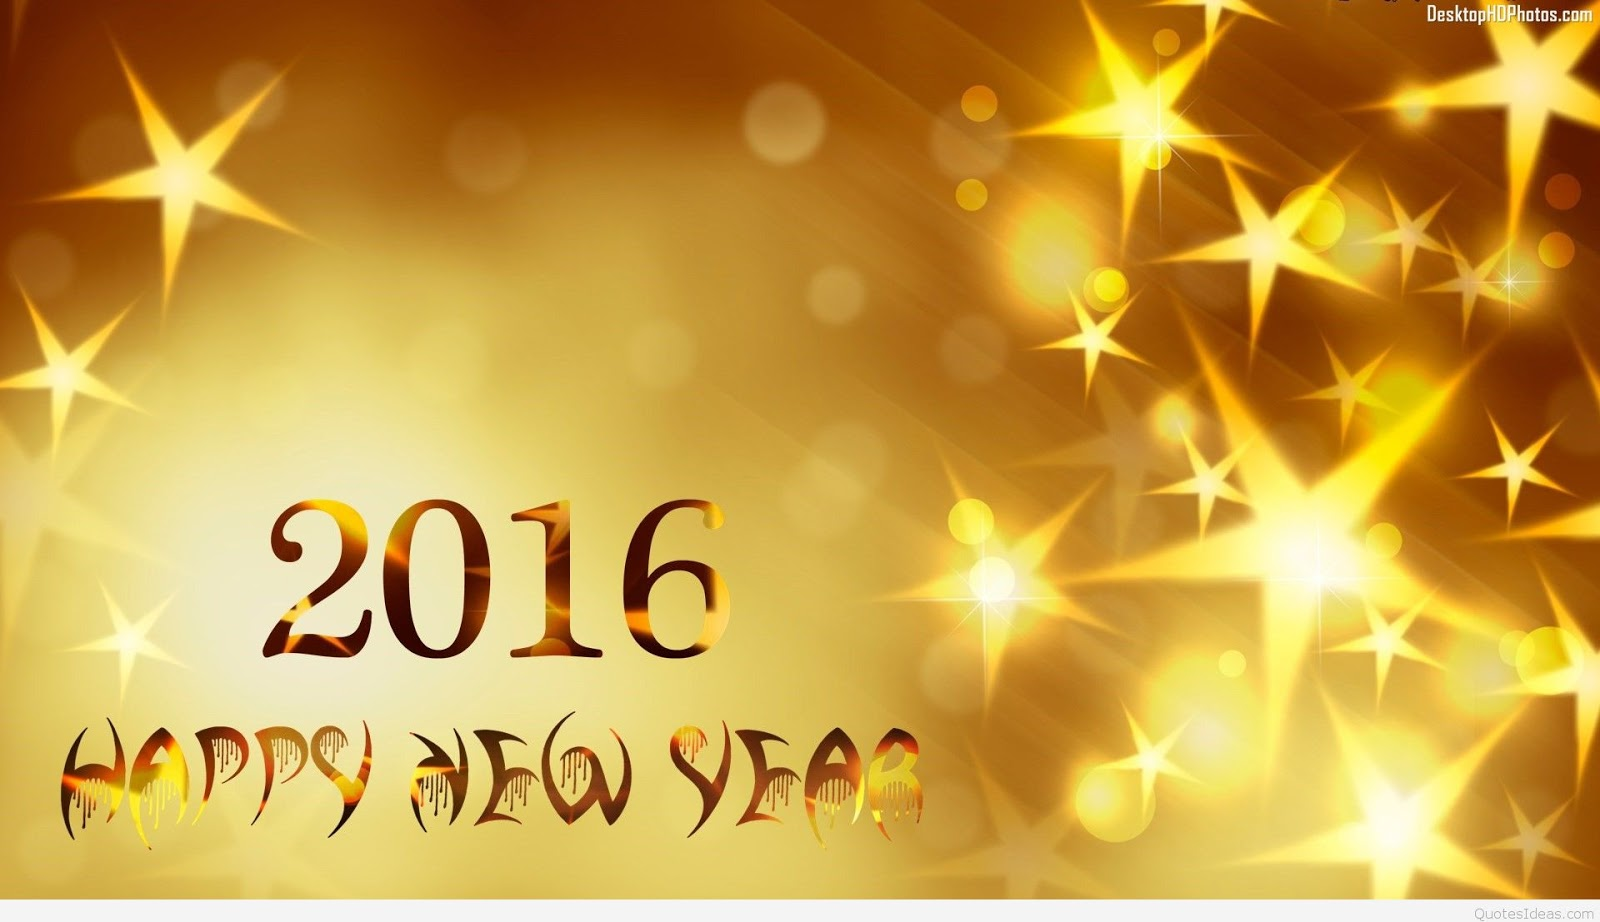 Happy New Year Wallpapers 2016 Smash Blog Trends 1600x922